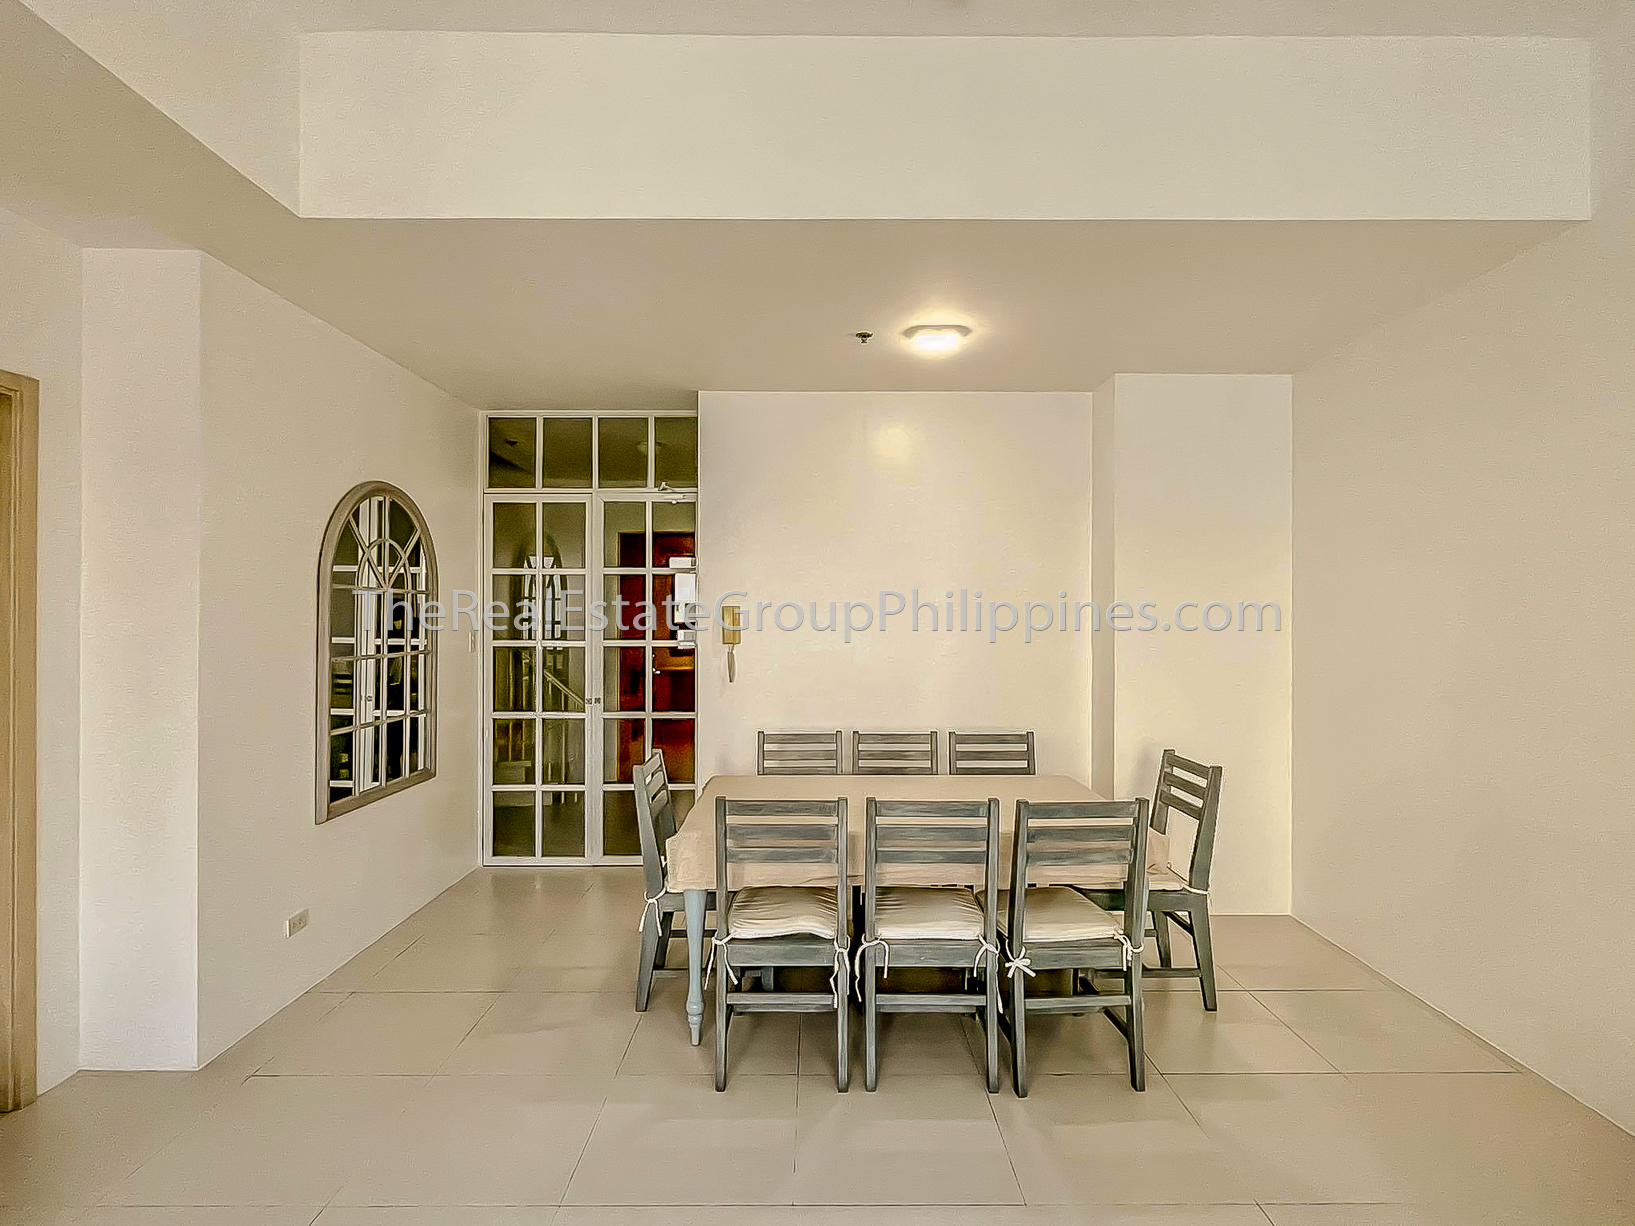 2BR Bi-Level Condo For Rent, Icon Residences Tower 1, BGC-5